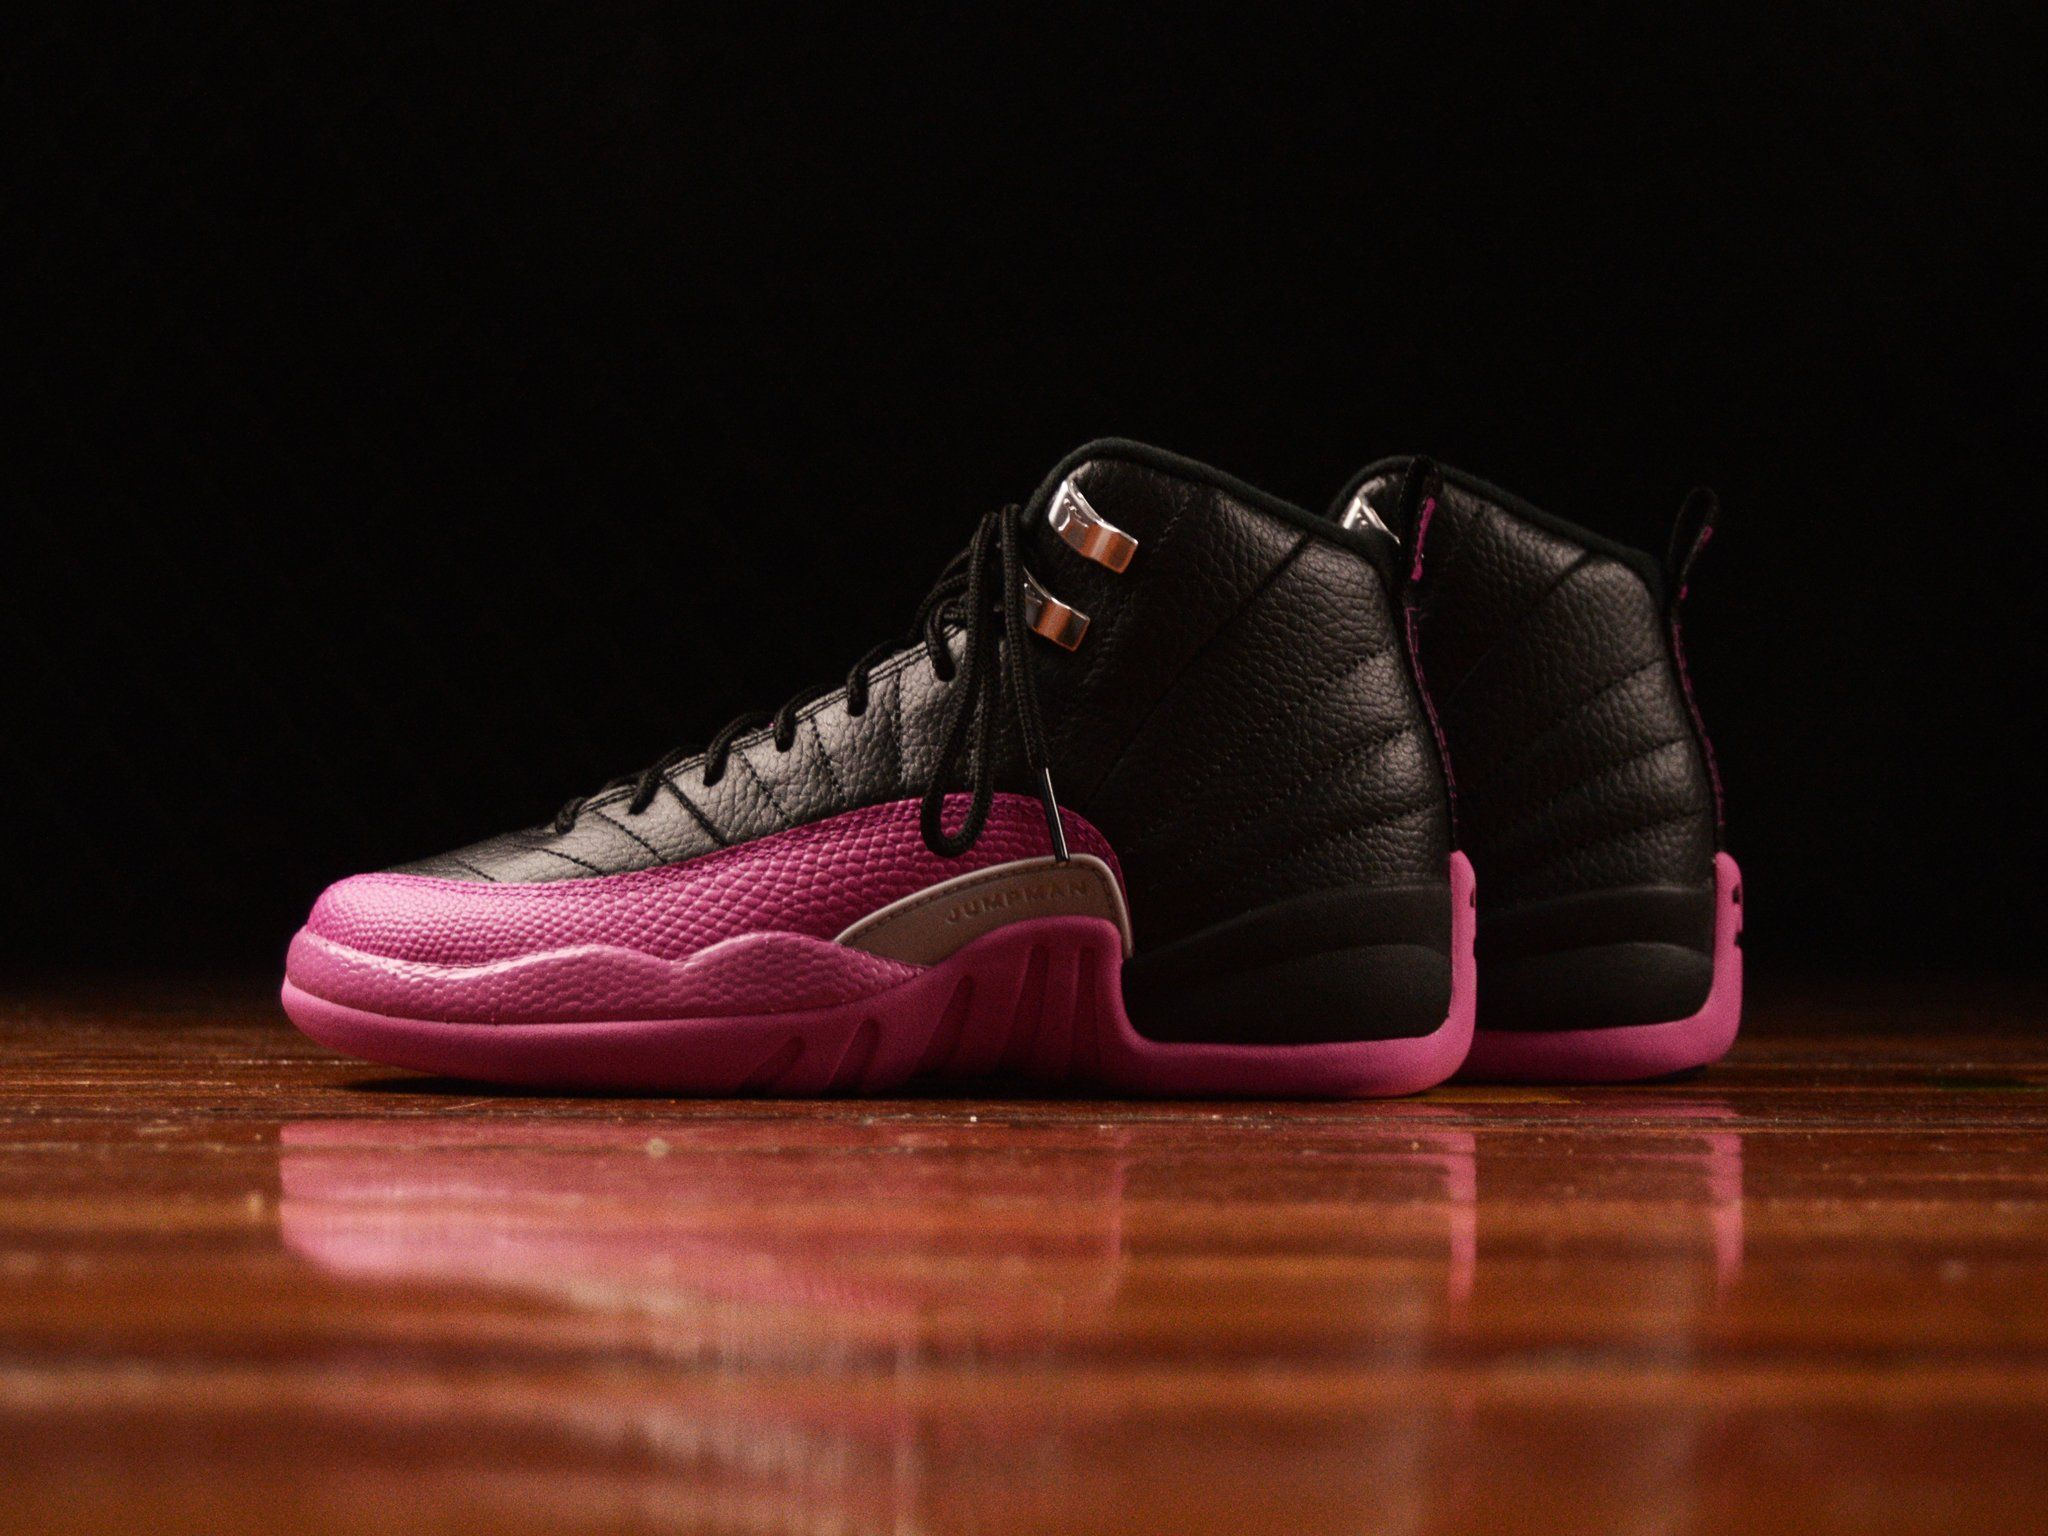 b3425264ed2 ... netherlands kids air jordan 12 retro gg deadly pink 6a120 08c86 ...